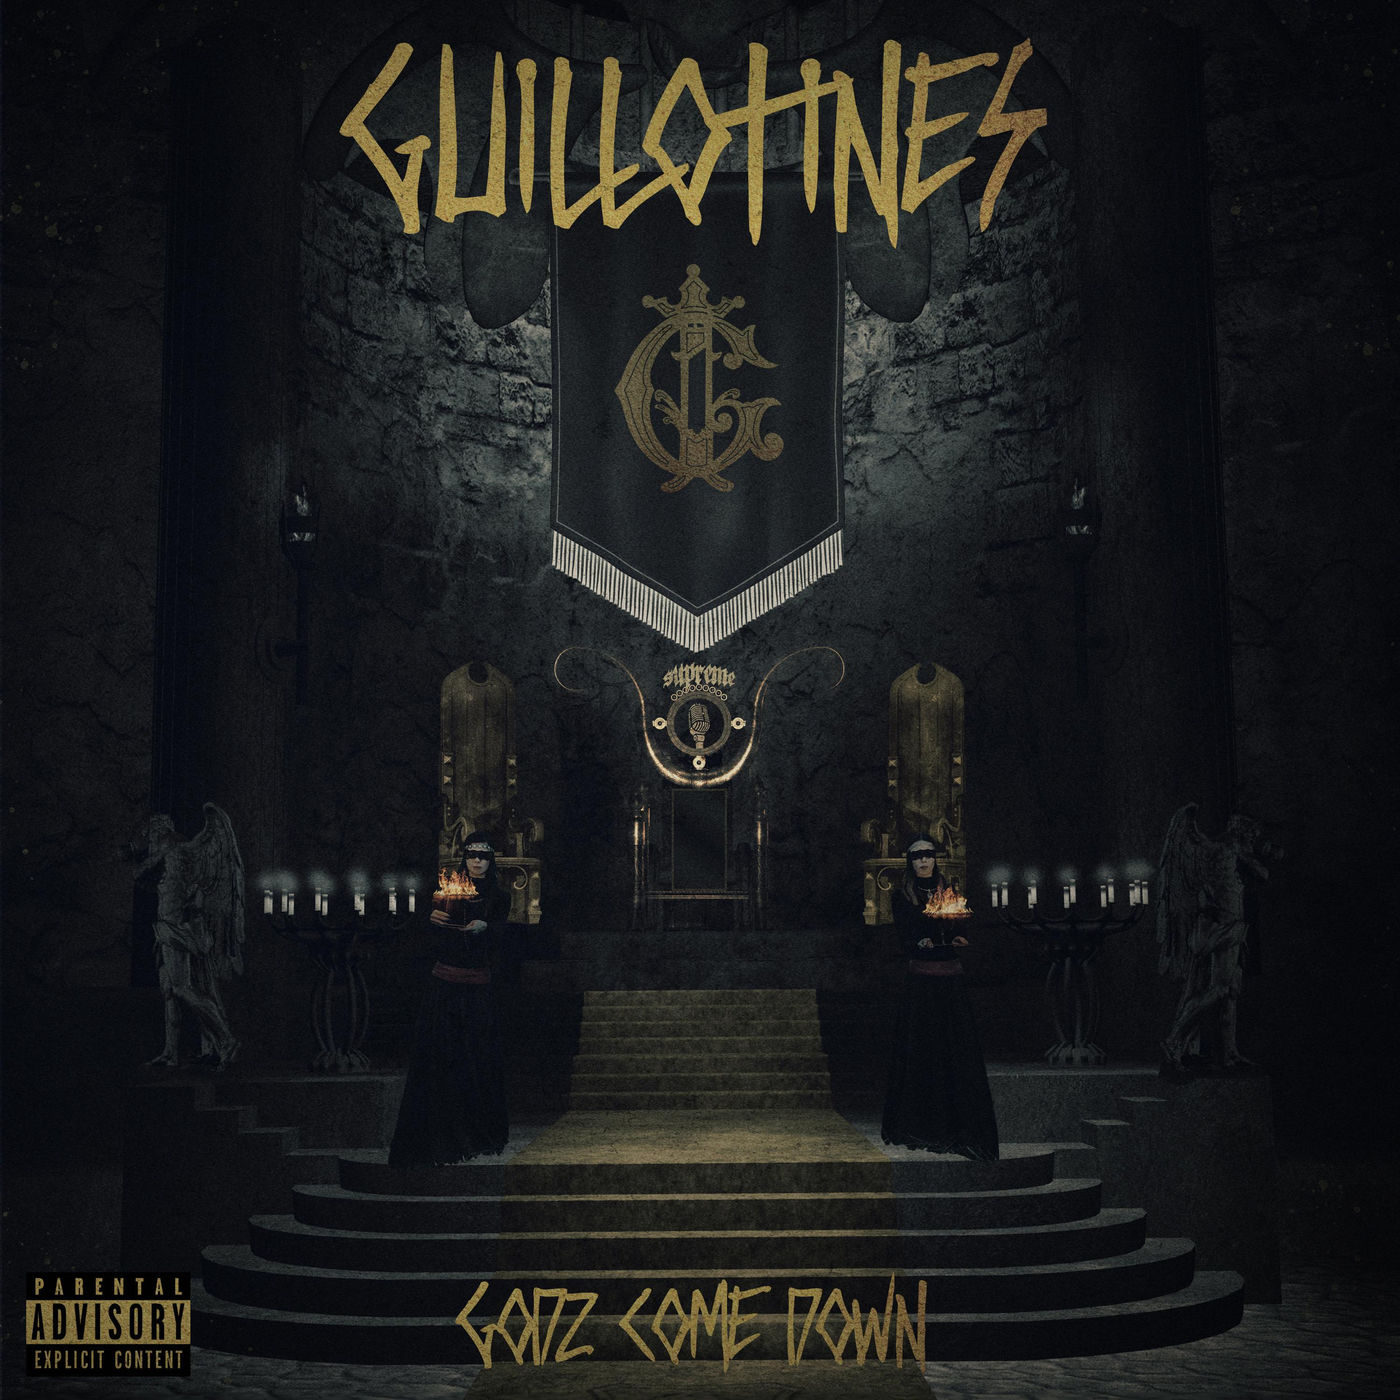 Guillotines - Godz Come Down [single] (2020)